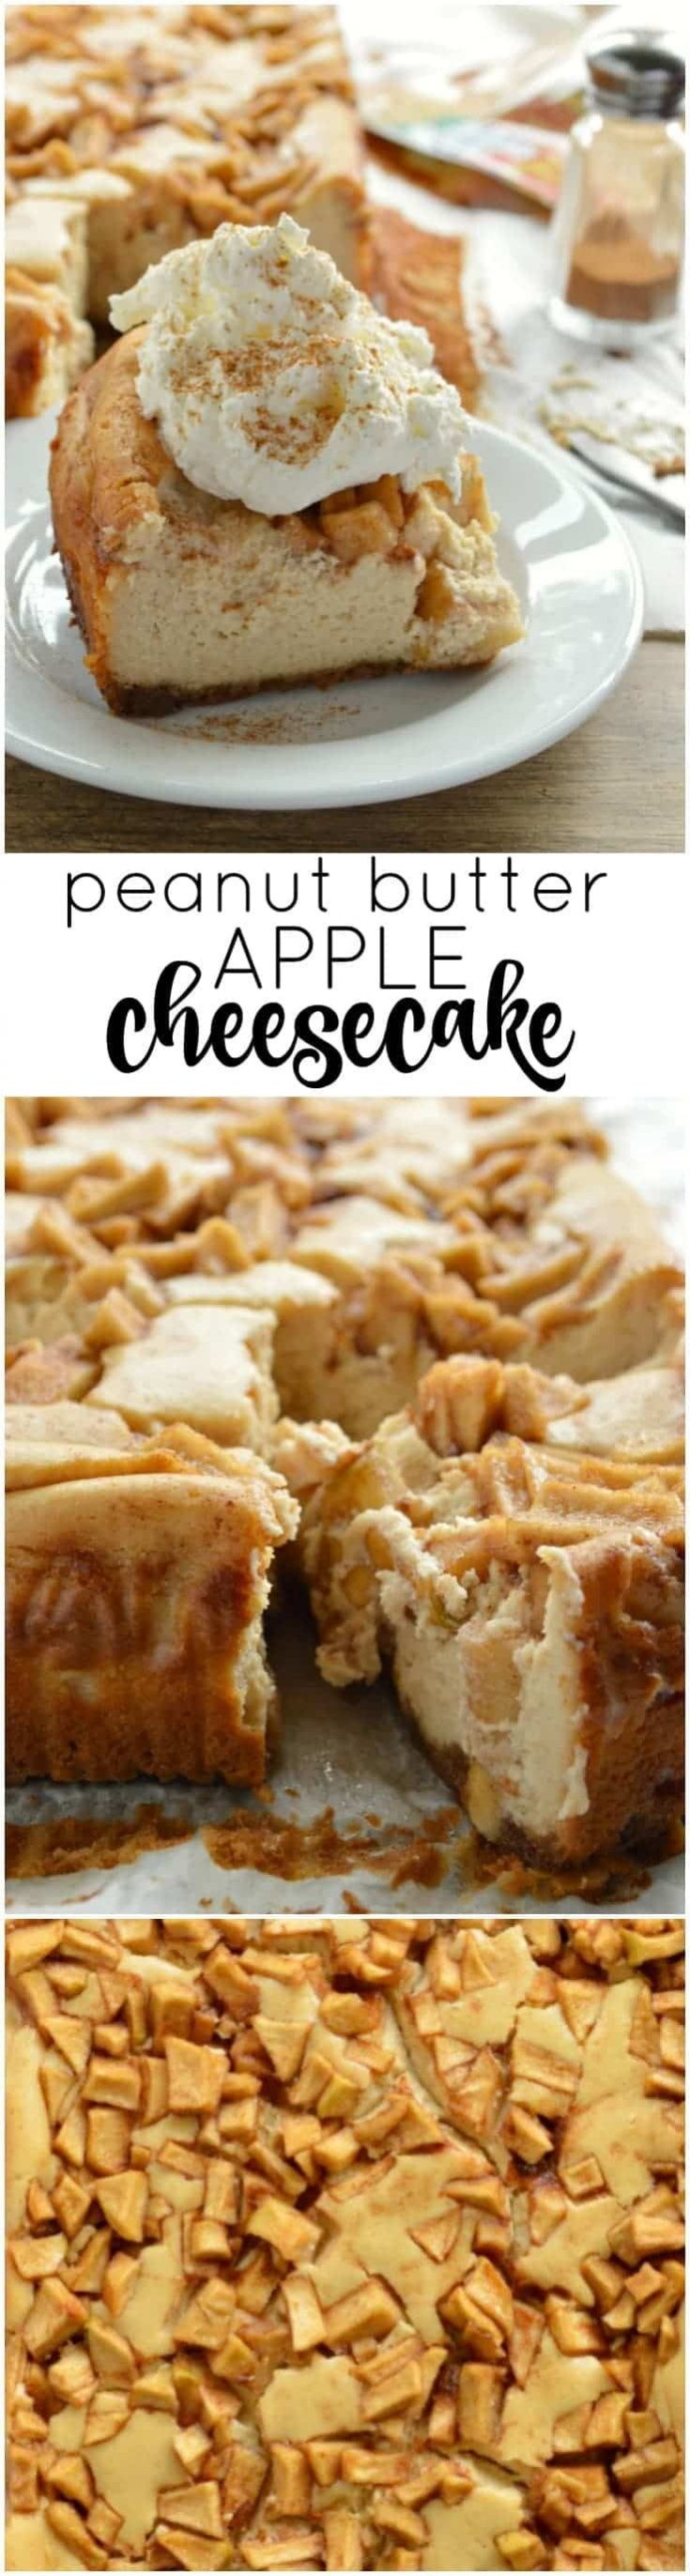 Peanut Butter Apple Cheesecake is a fall favorite! Creamy peanut butter cheesecake topped with delicious cinnamon peanut butter apples, all on a graham cracker crust. Be sure to leave yourself a couple of hours for the cheesecake to chill before slicing and serving.